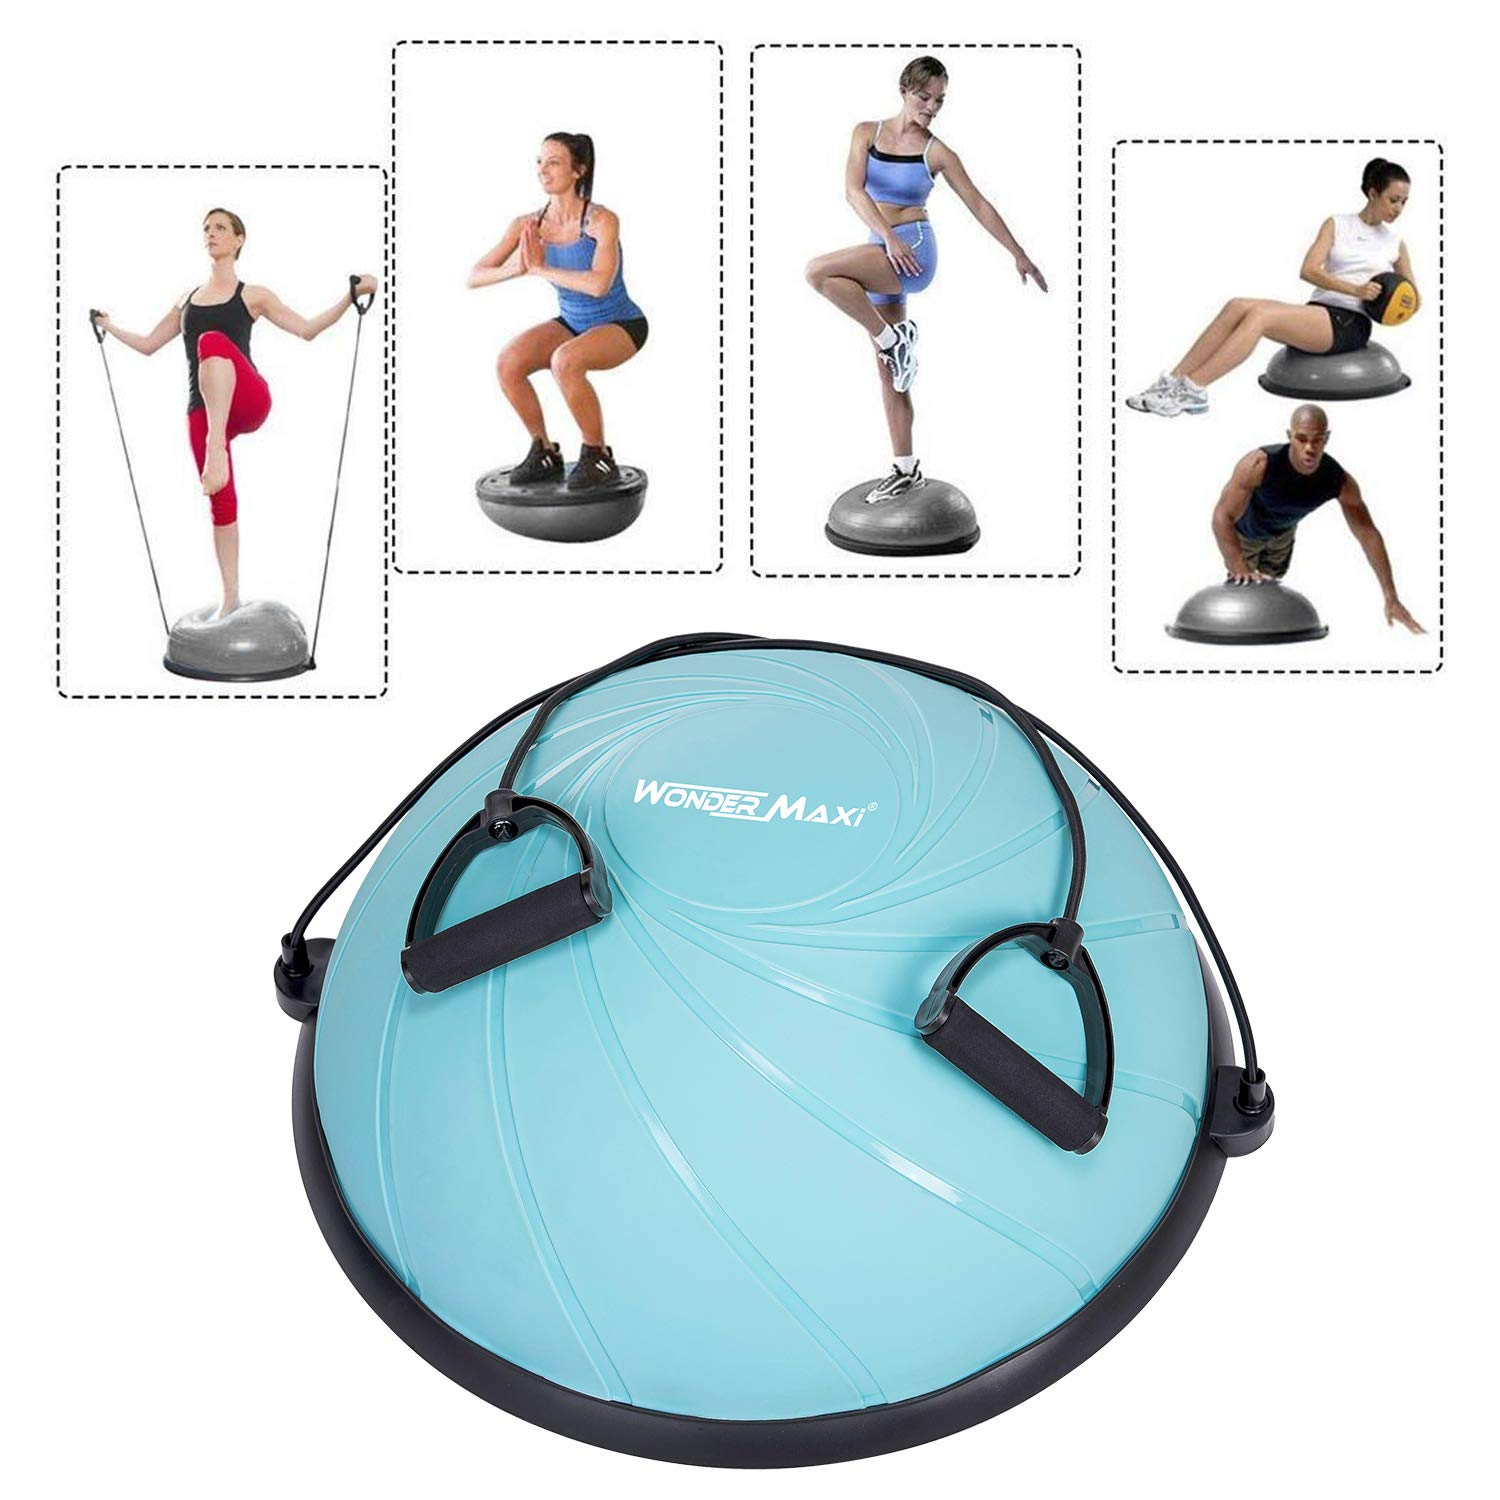 Yoga Balance Trainer Exercise Ball with Resistance Bands Half Dome Stability Ball Home Fitness Strength Exercise Workout with Pump